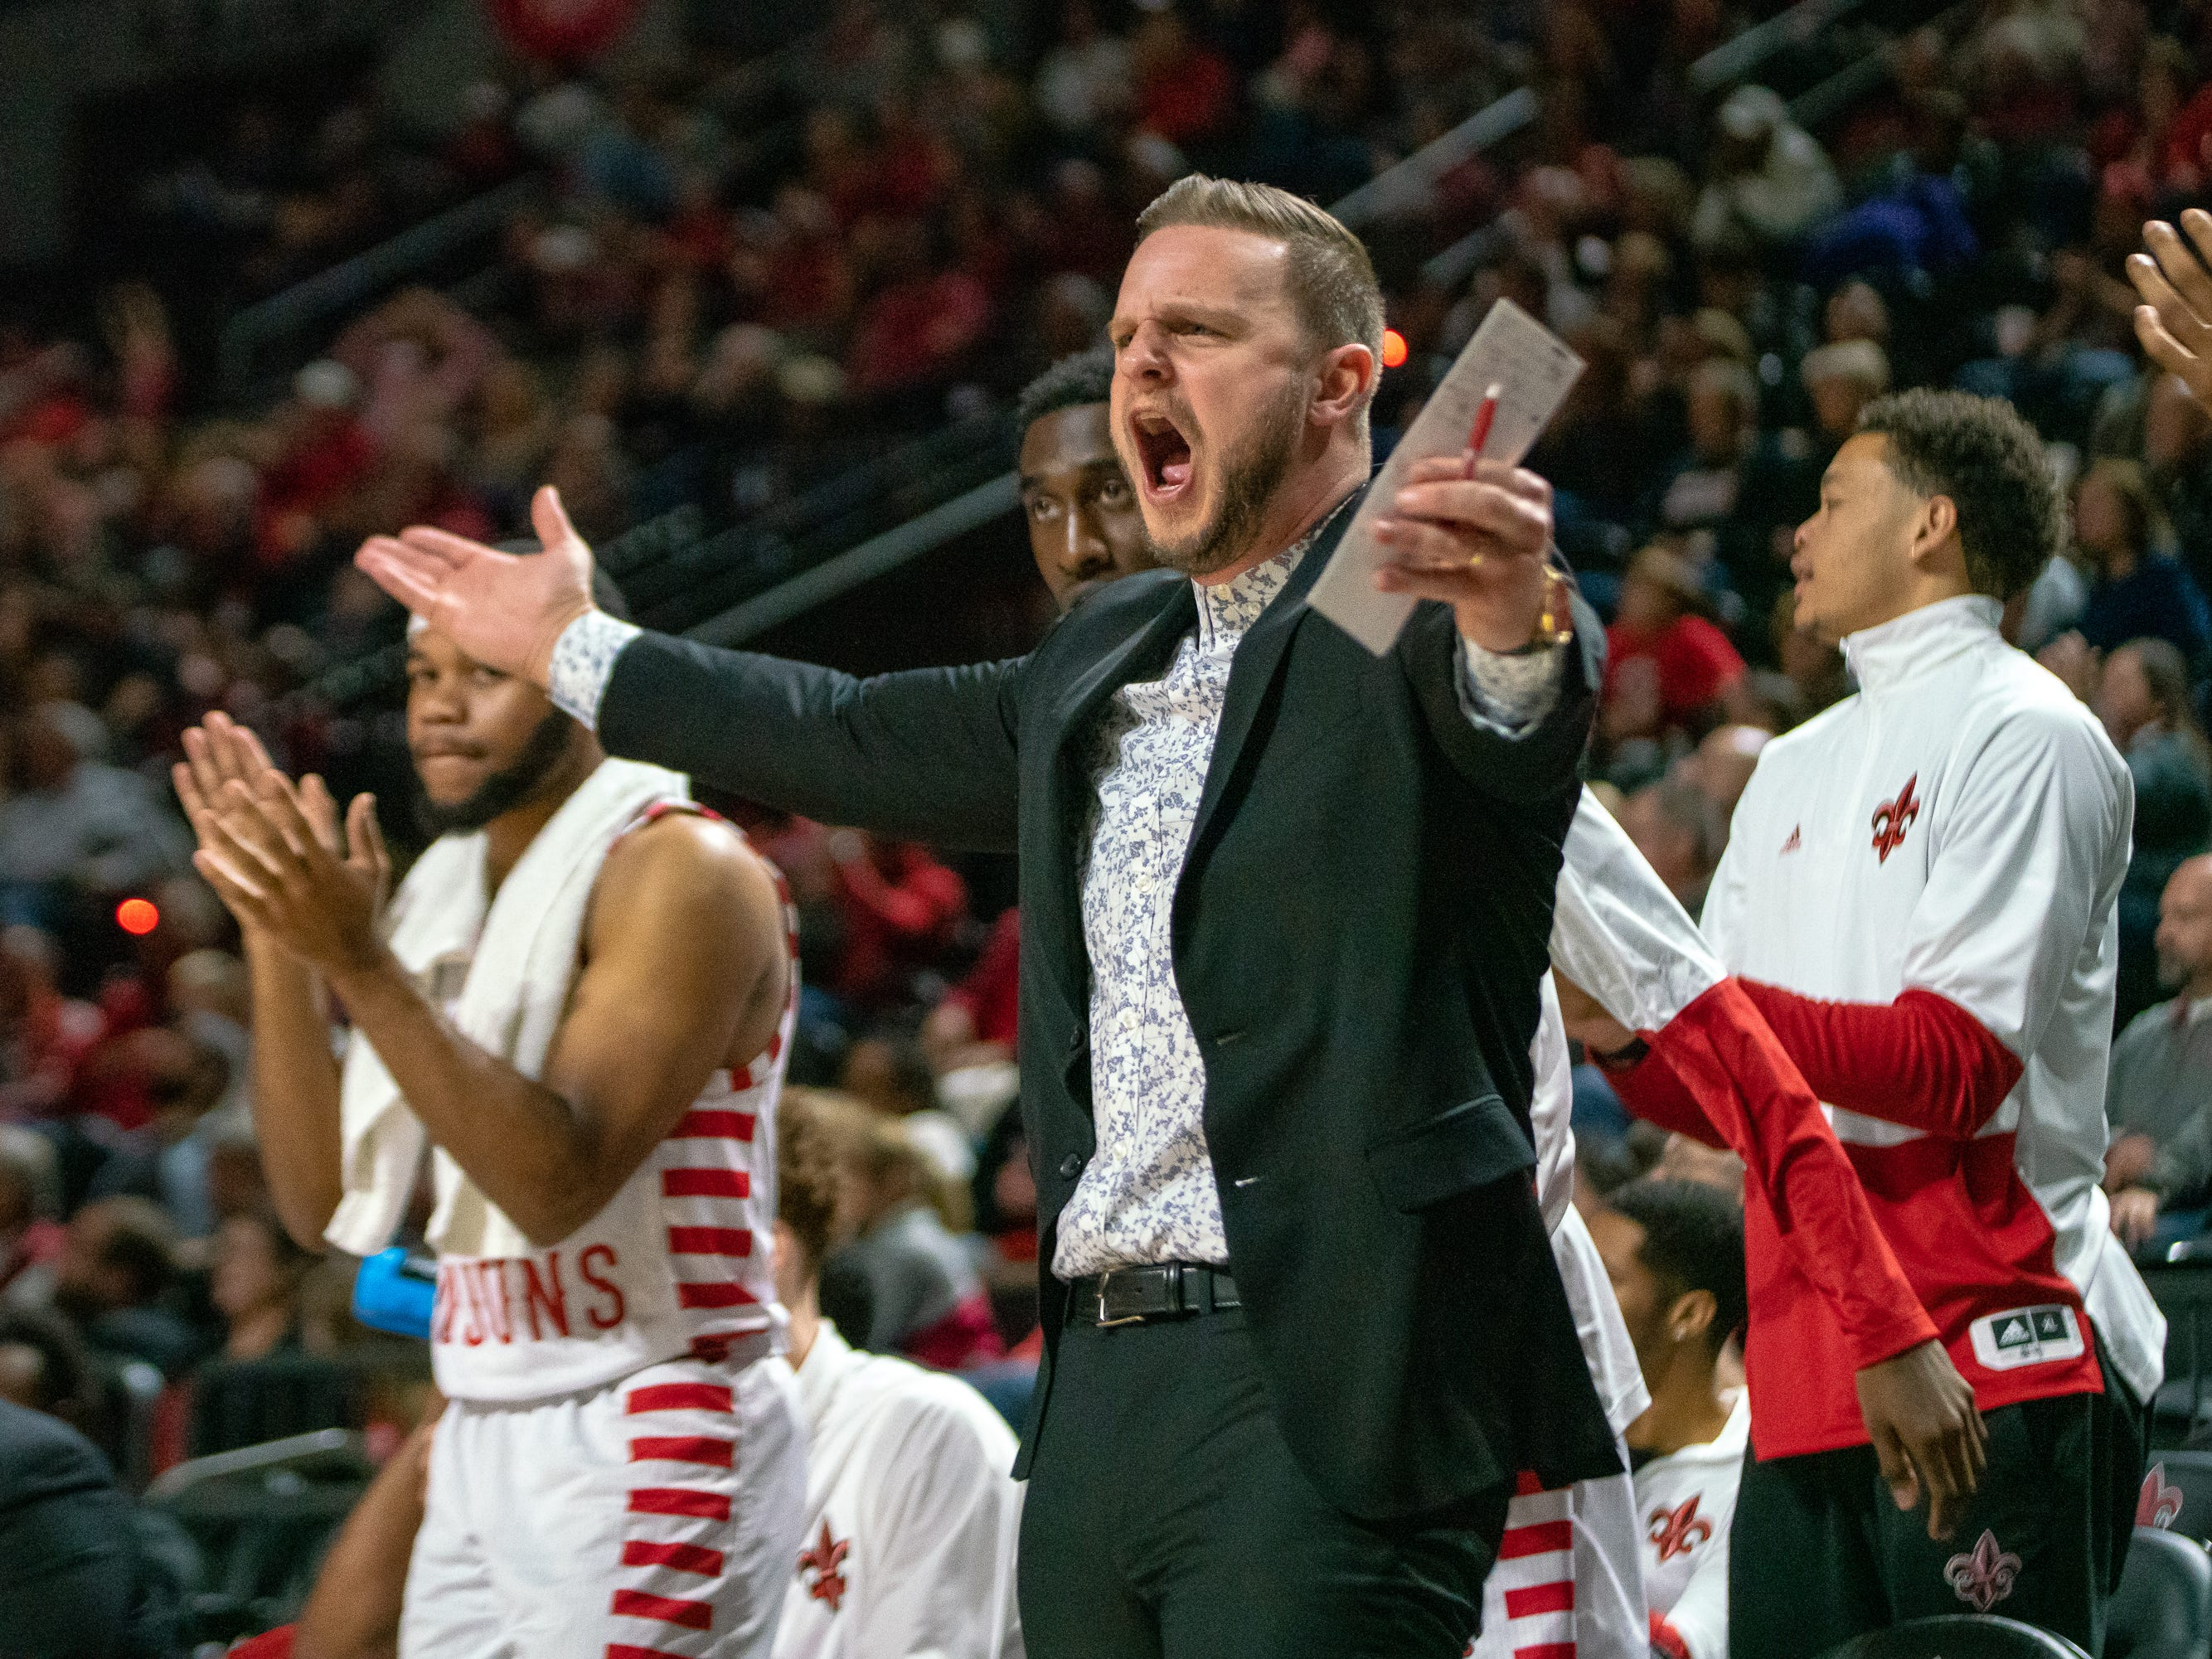 UL's Kyle Carrigee hypes up the bench after a successful play as the Ragin' Cajuns take on the Troy Trojans at the Cajundome on Jan. 26, 2019.